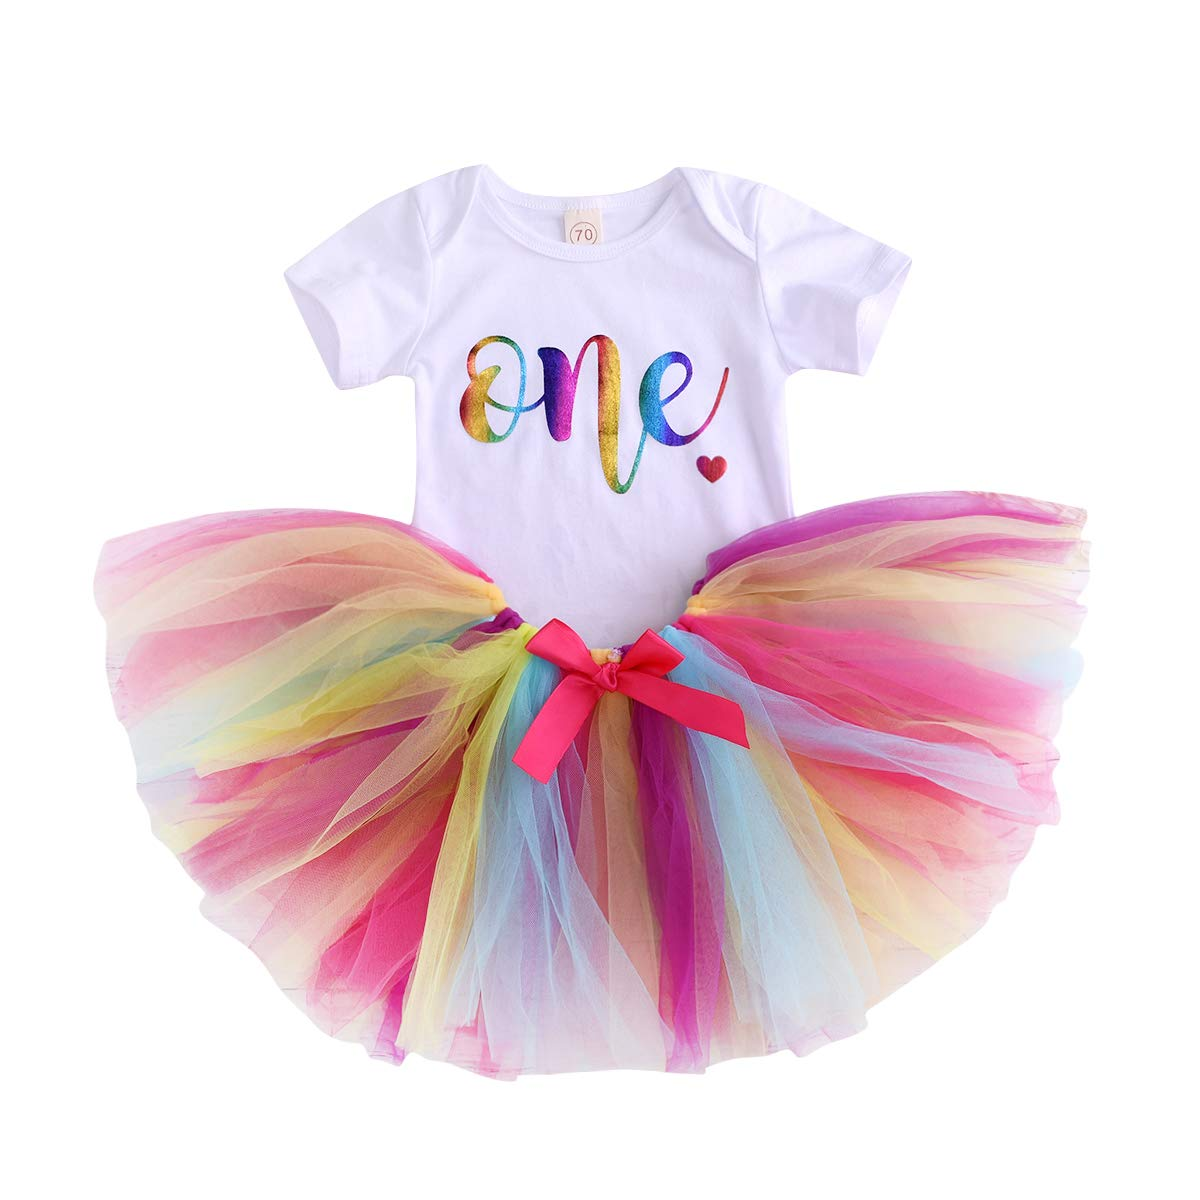 Tutu Skirt Dress 3PCS Unicorn Outfit Newborn Baby Girls 1st Birthday Romper Headband Clothing Set Pink citgeett